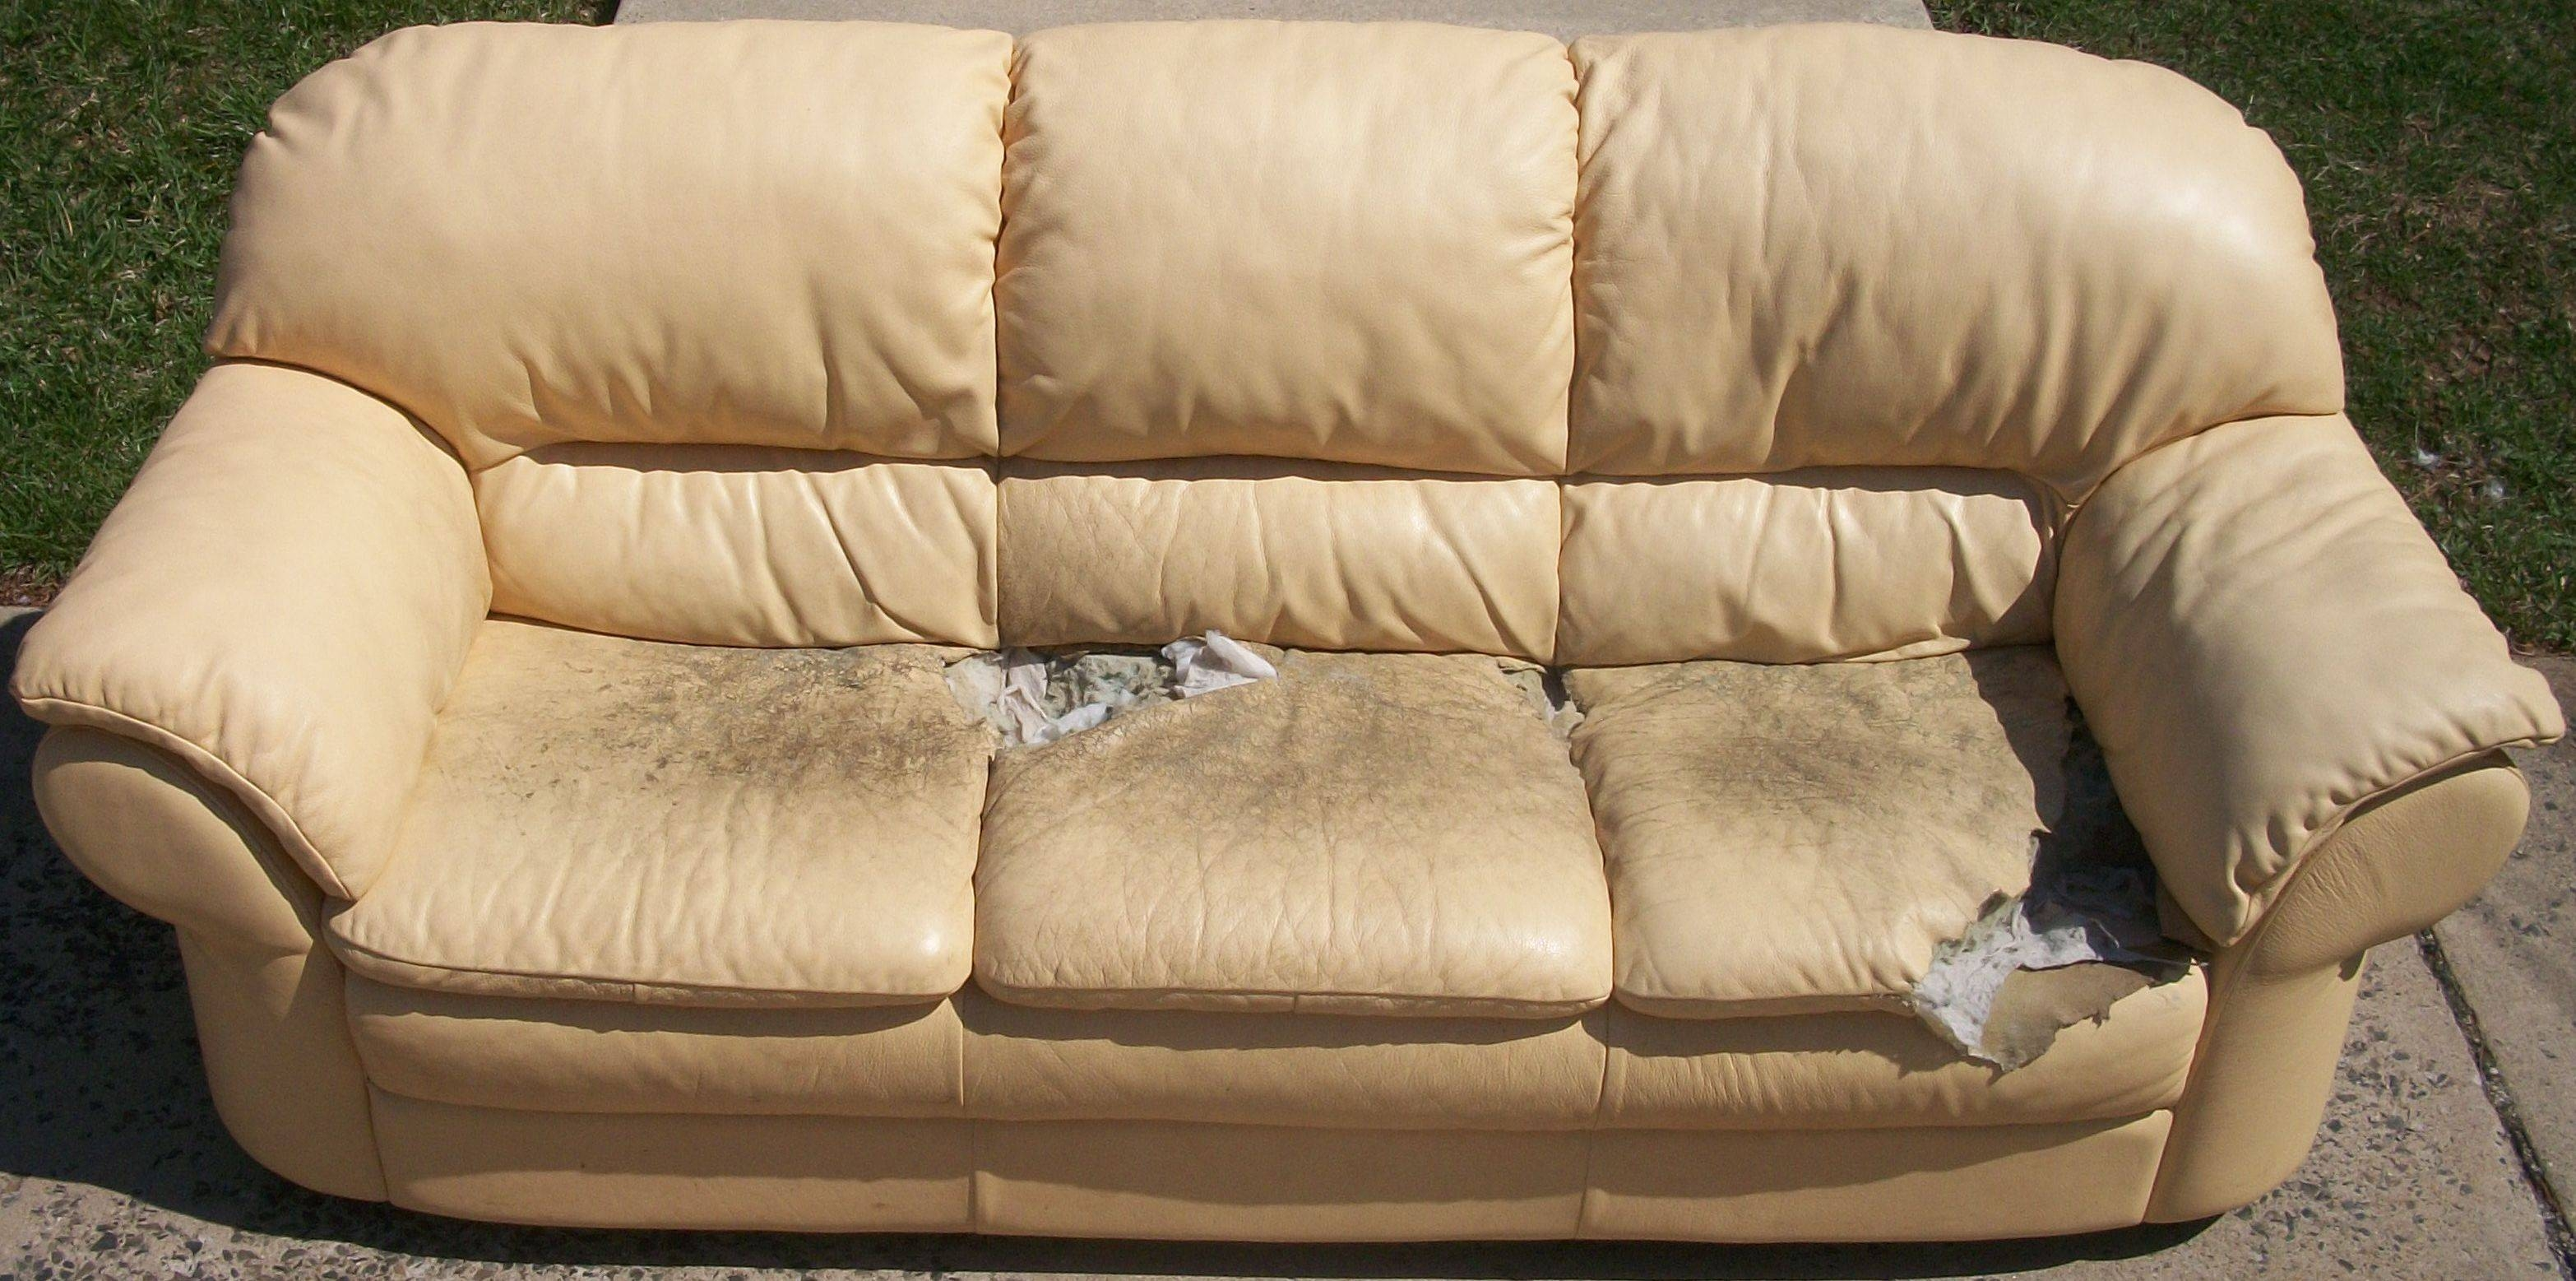 Epic Reupholster Leather Couch 44 For Office Sofa Ideas With with Reupholster Sofas Cushions (Image 6 of 15)